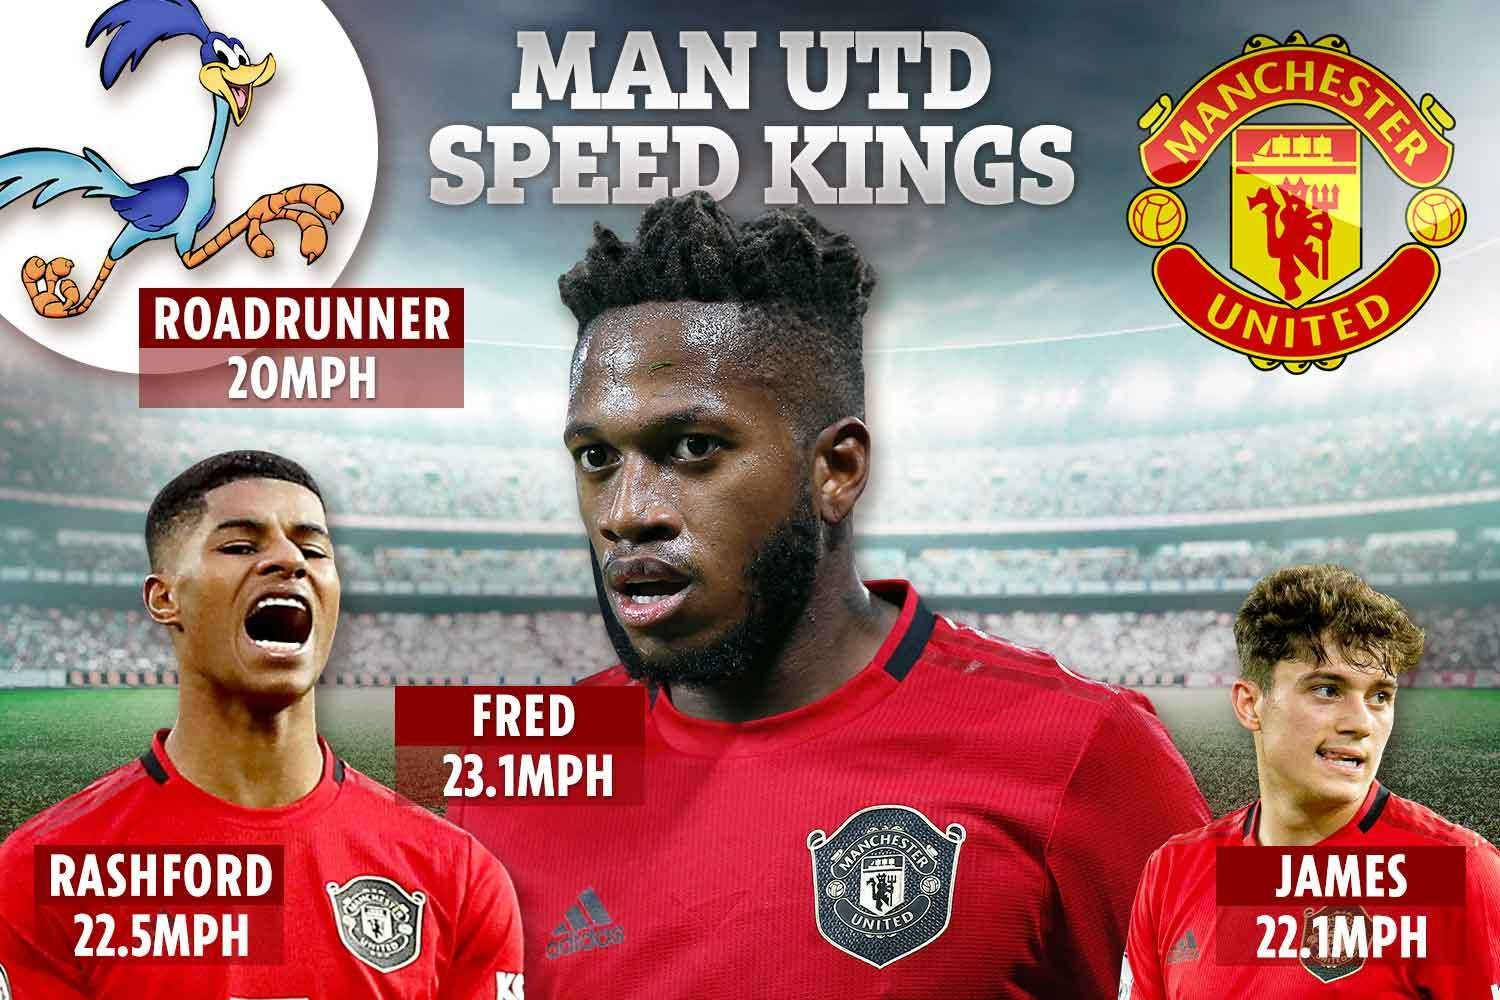 Man Utd Shock As Stats Prove Fred Is Faster Than Speedsters Rashford James And A Roadrunner Football Soccer Sports Futbol Fifa S Road Runner Premier League Sports